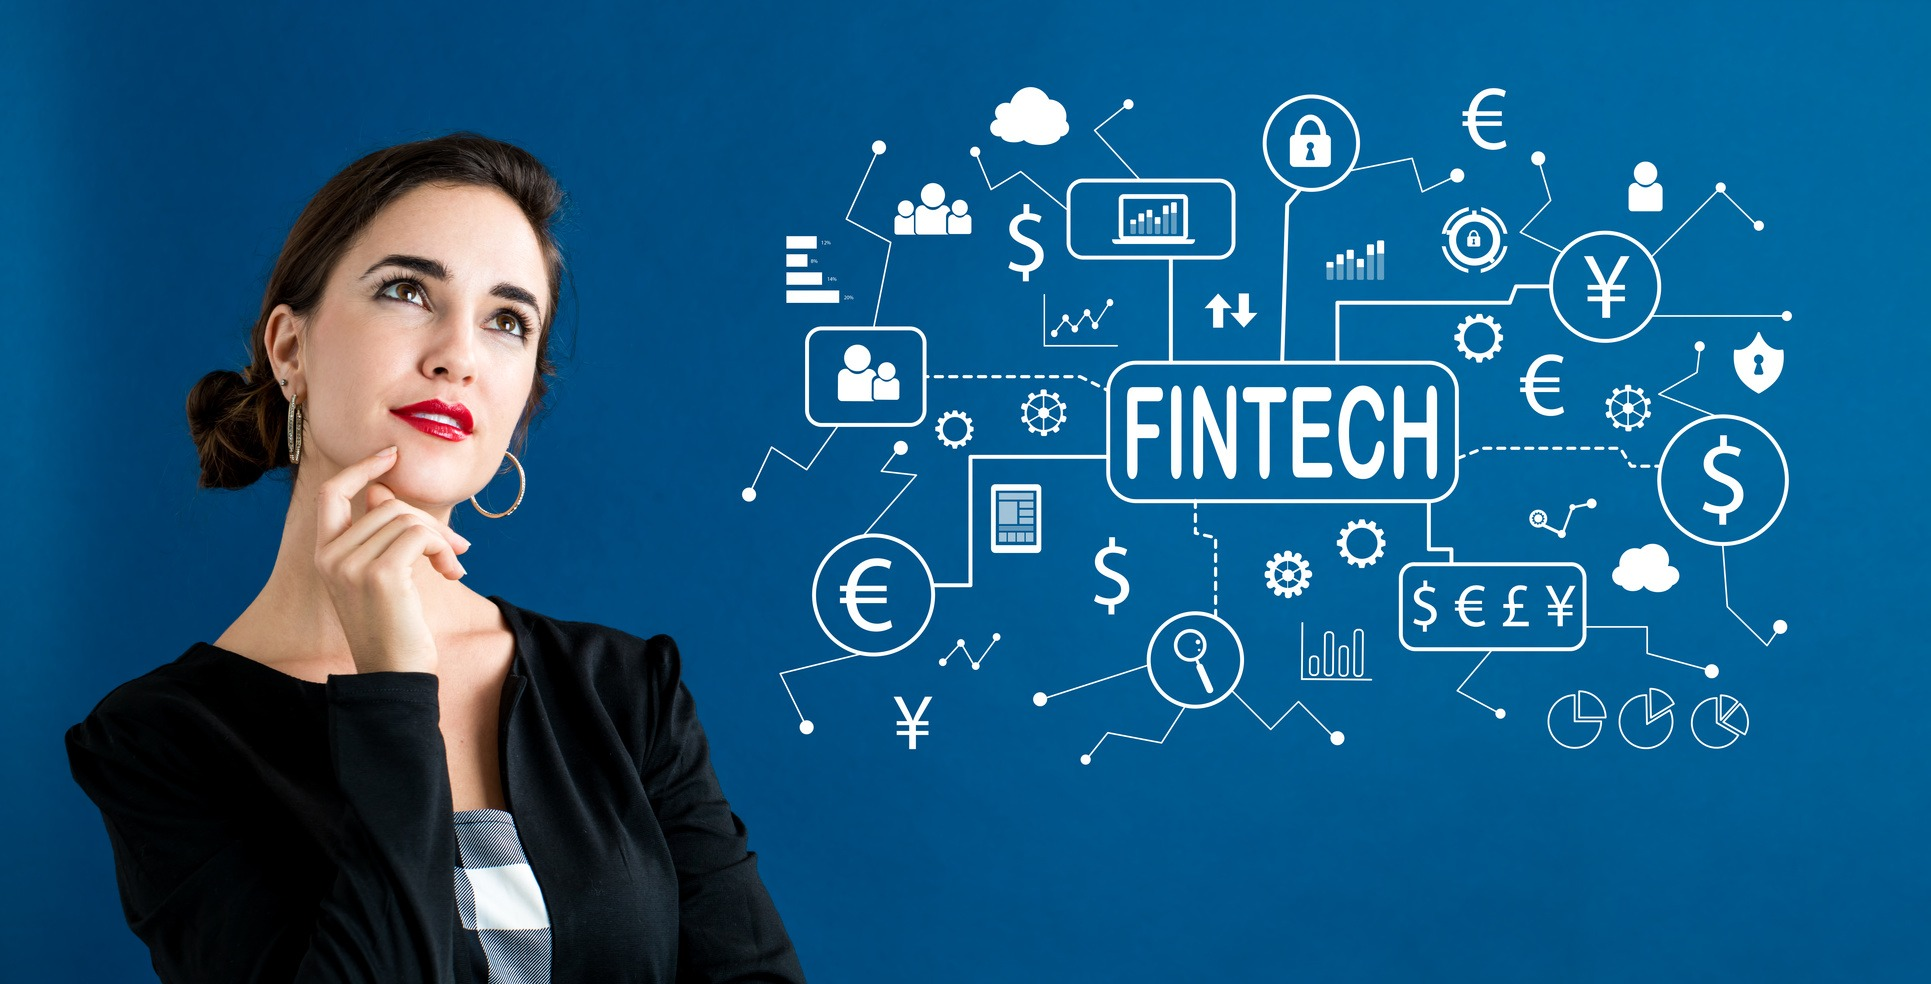 5 most important features for Fintech